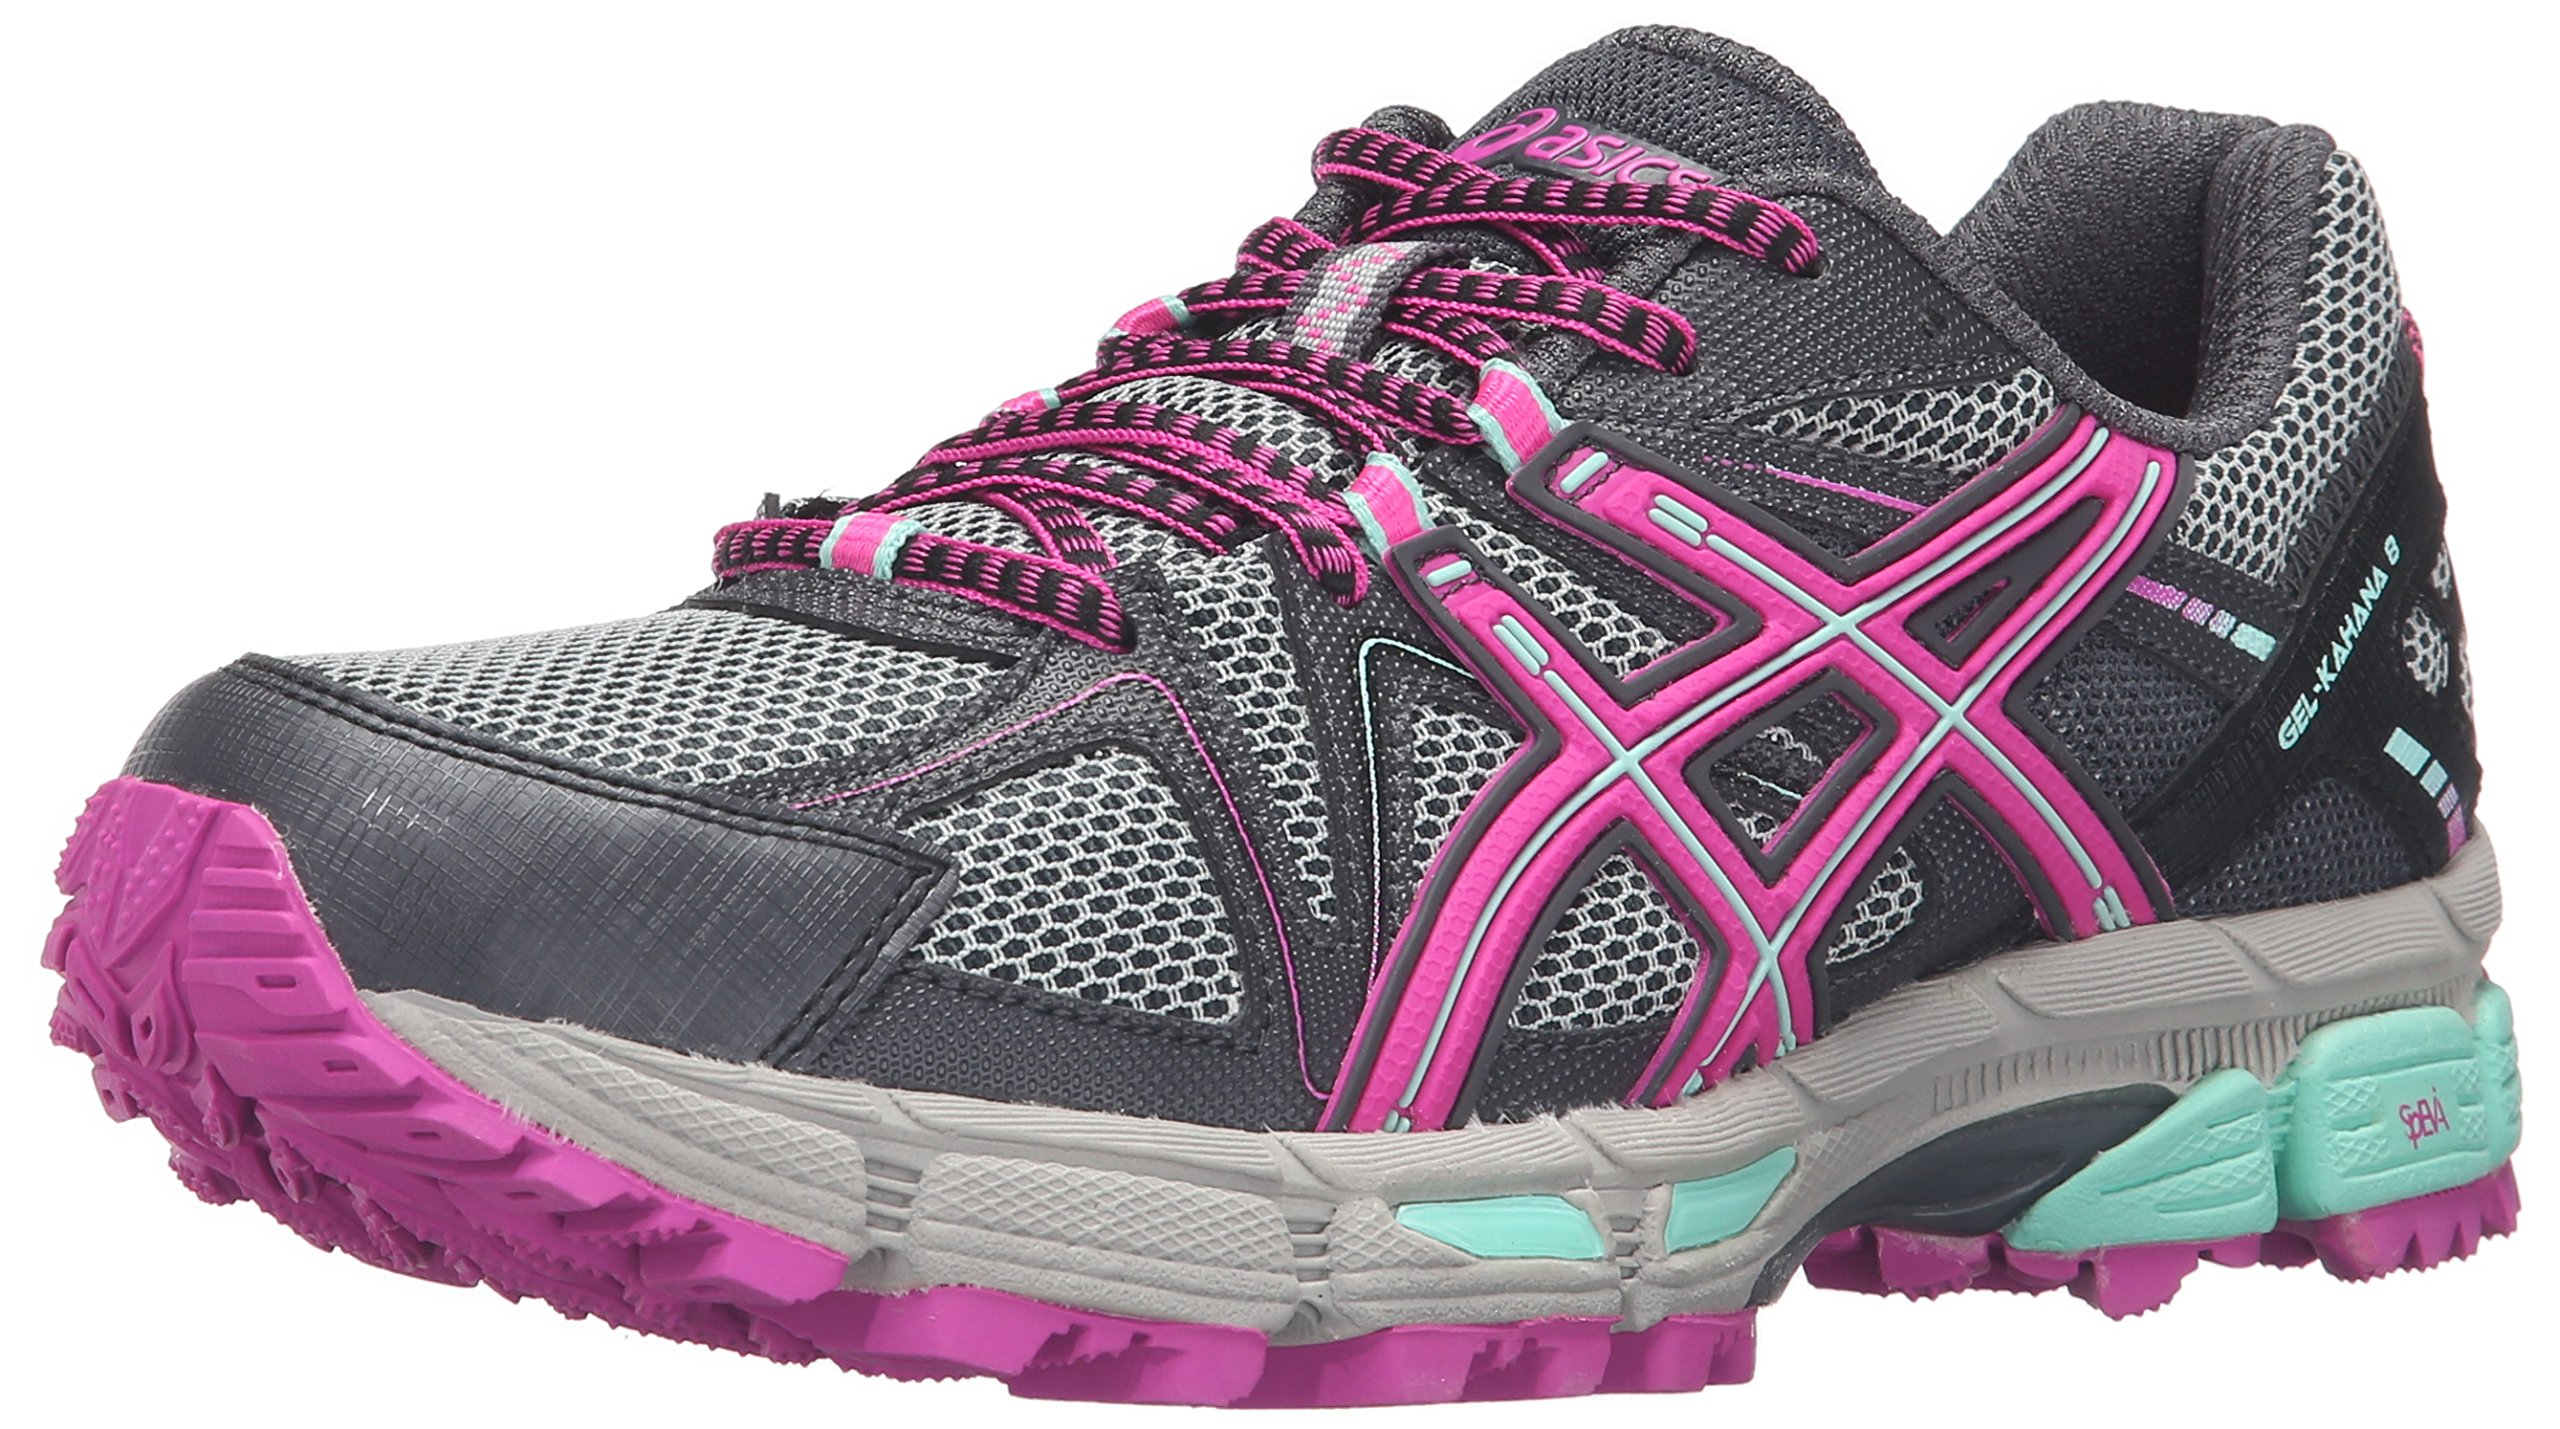 ASICS Women's Gel-Kahana 8 Trail Runner, Dark Steel/Pink Glow/Mint, 8 M US by ASICS